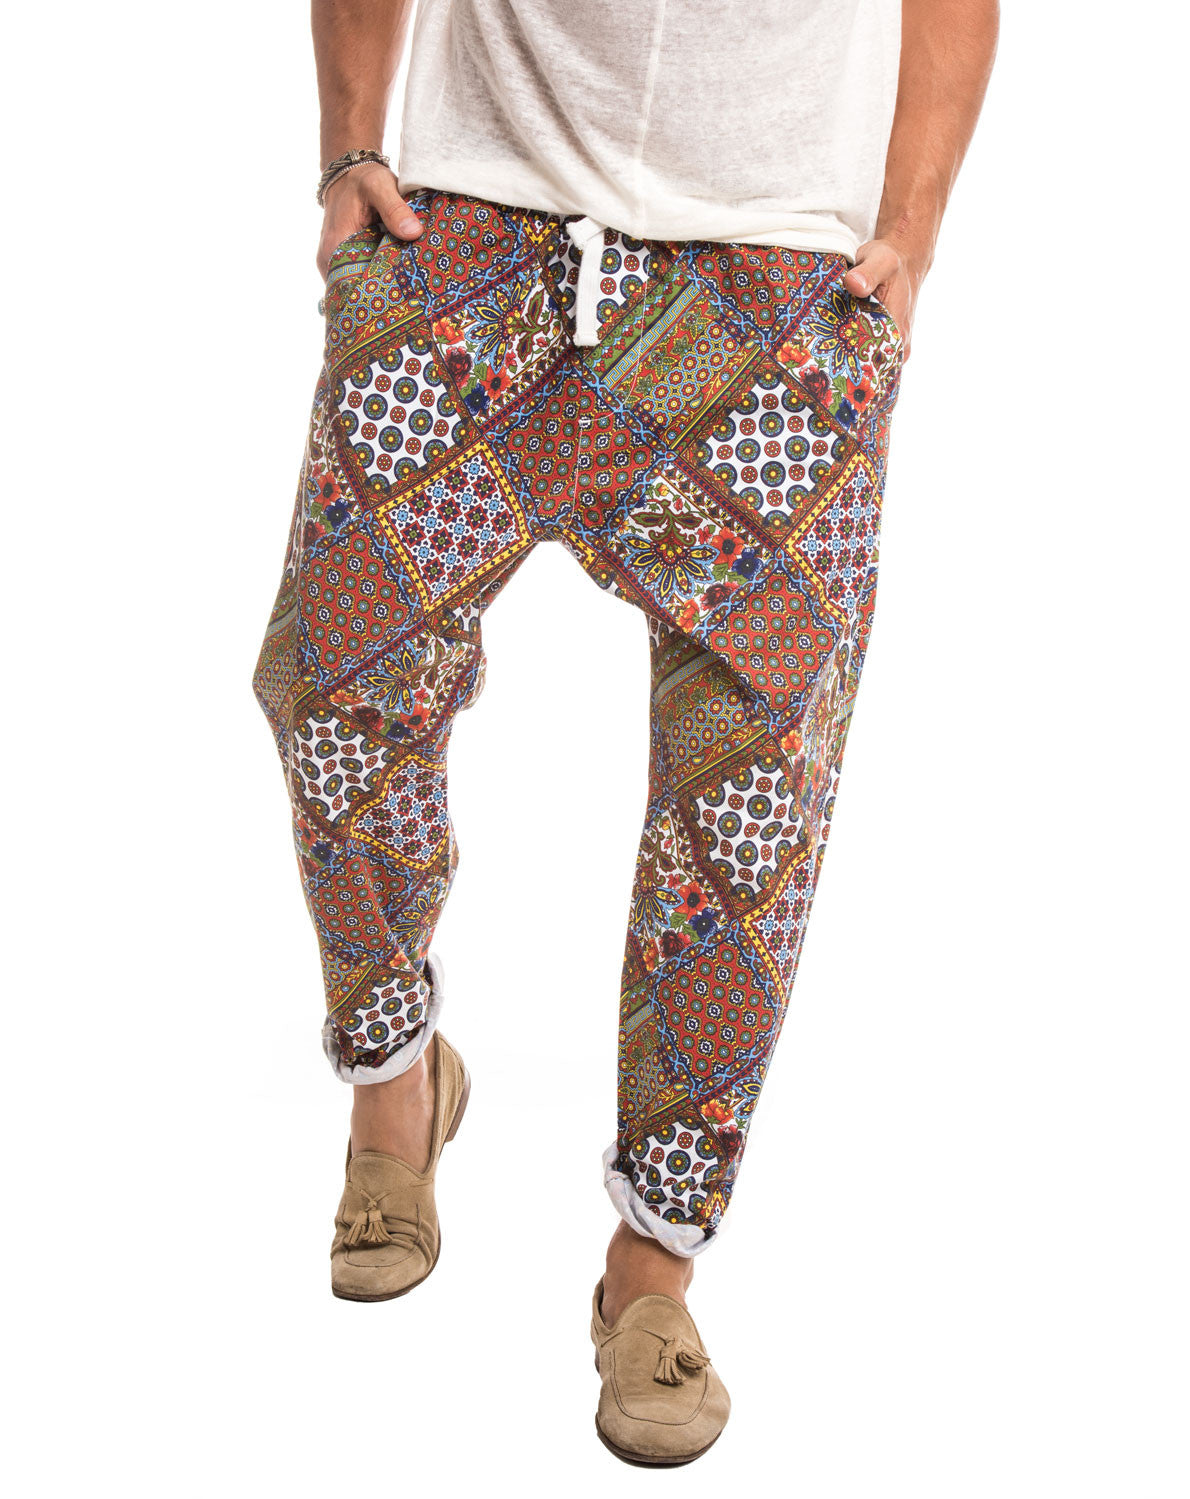 MEN'S CLOTHING | COACHELLA RED PANTS | BOHO TROUSERS | MEN'S BOTTOMS | TAPERED LEG | RELAXED FIT | NOHOW STREET COUTURE | NOHOW